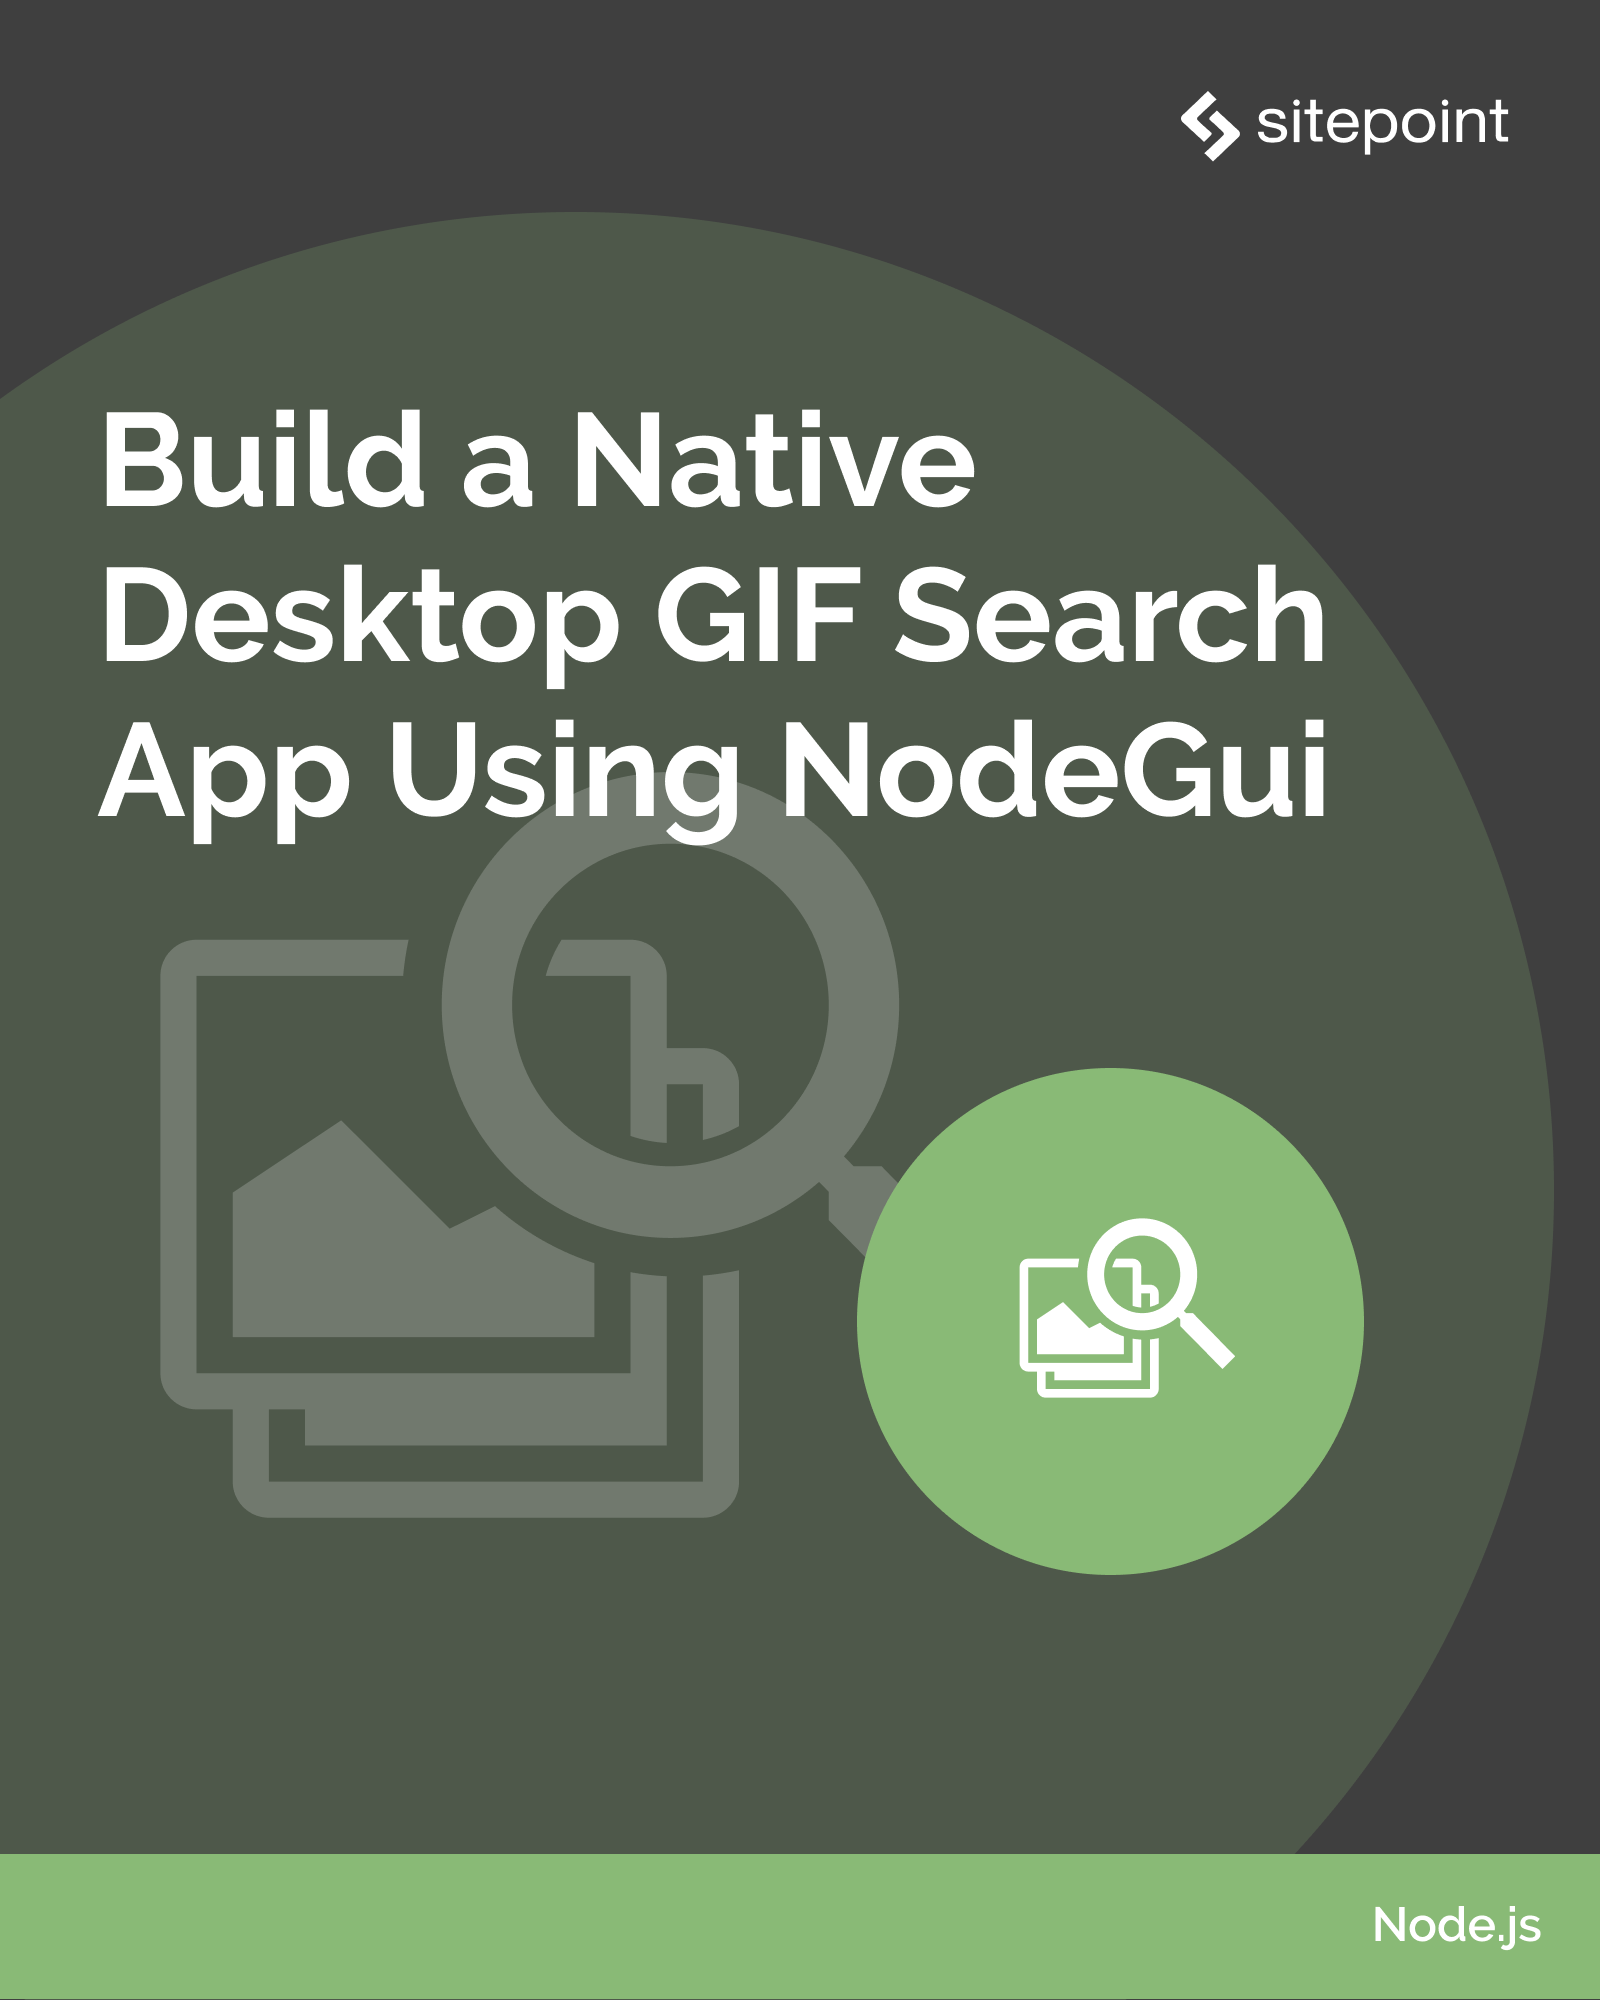 Build a Native Desktop GIF Search App Using NodeGui